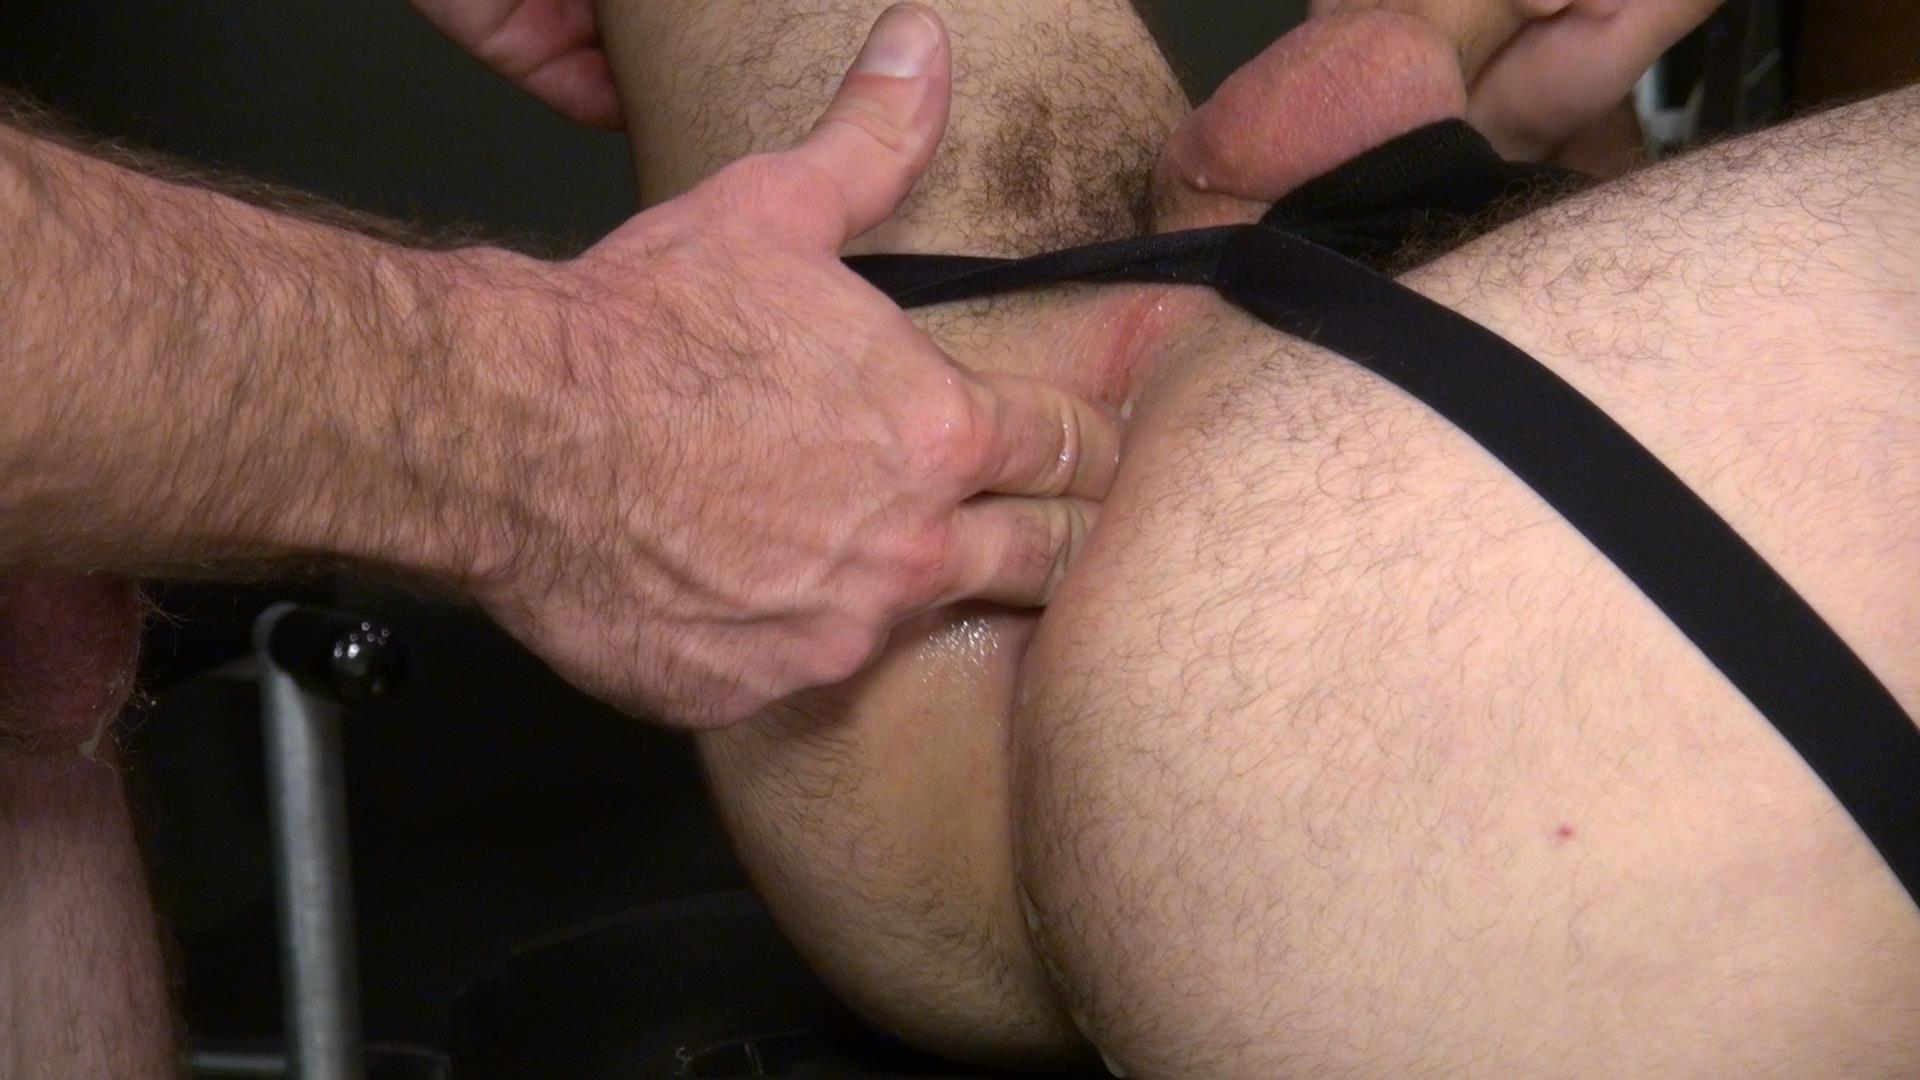 Raw and Rough Jake Wetmore and Dusty Williams and Kid Satyr Bareback Taking Raw Daddy Loads Cum Amateur Gay Porn 07 Hairy Pup Taking Raw Interracial Daddy Loads Bareback